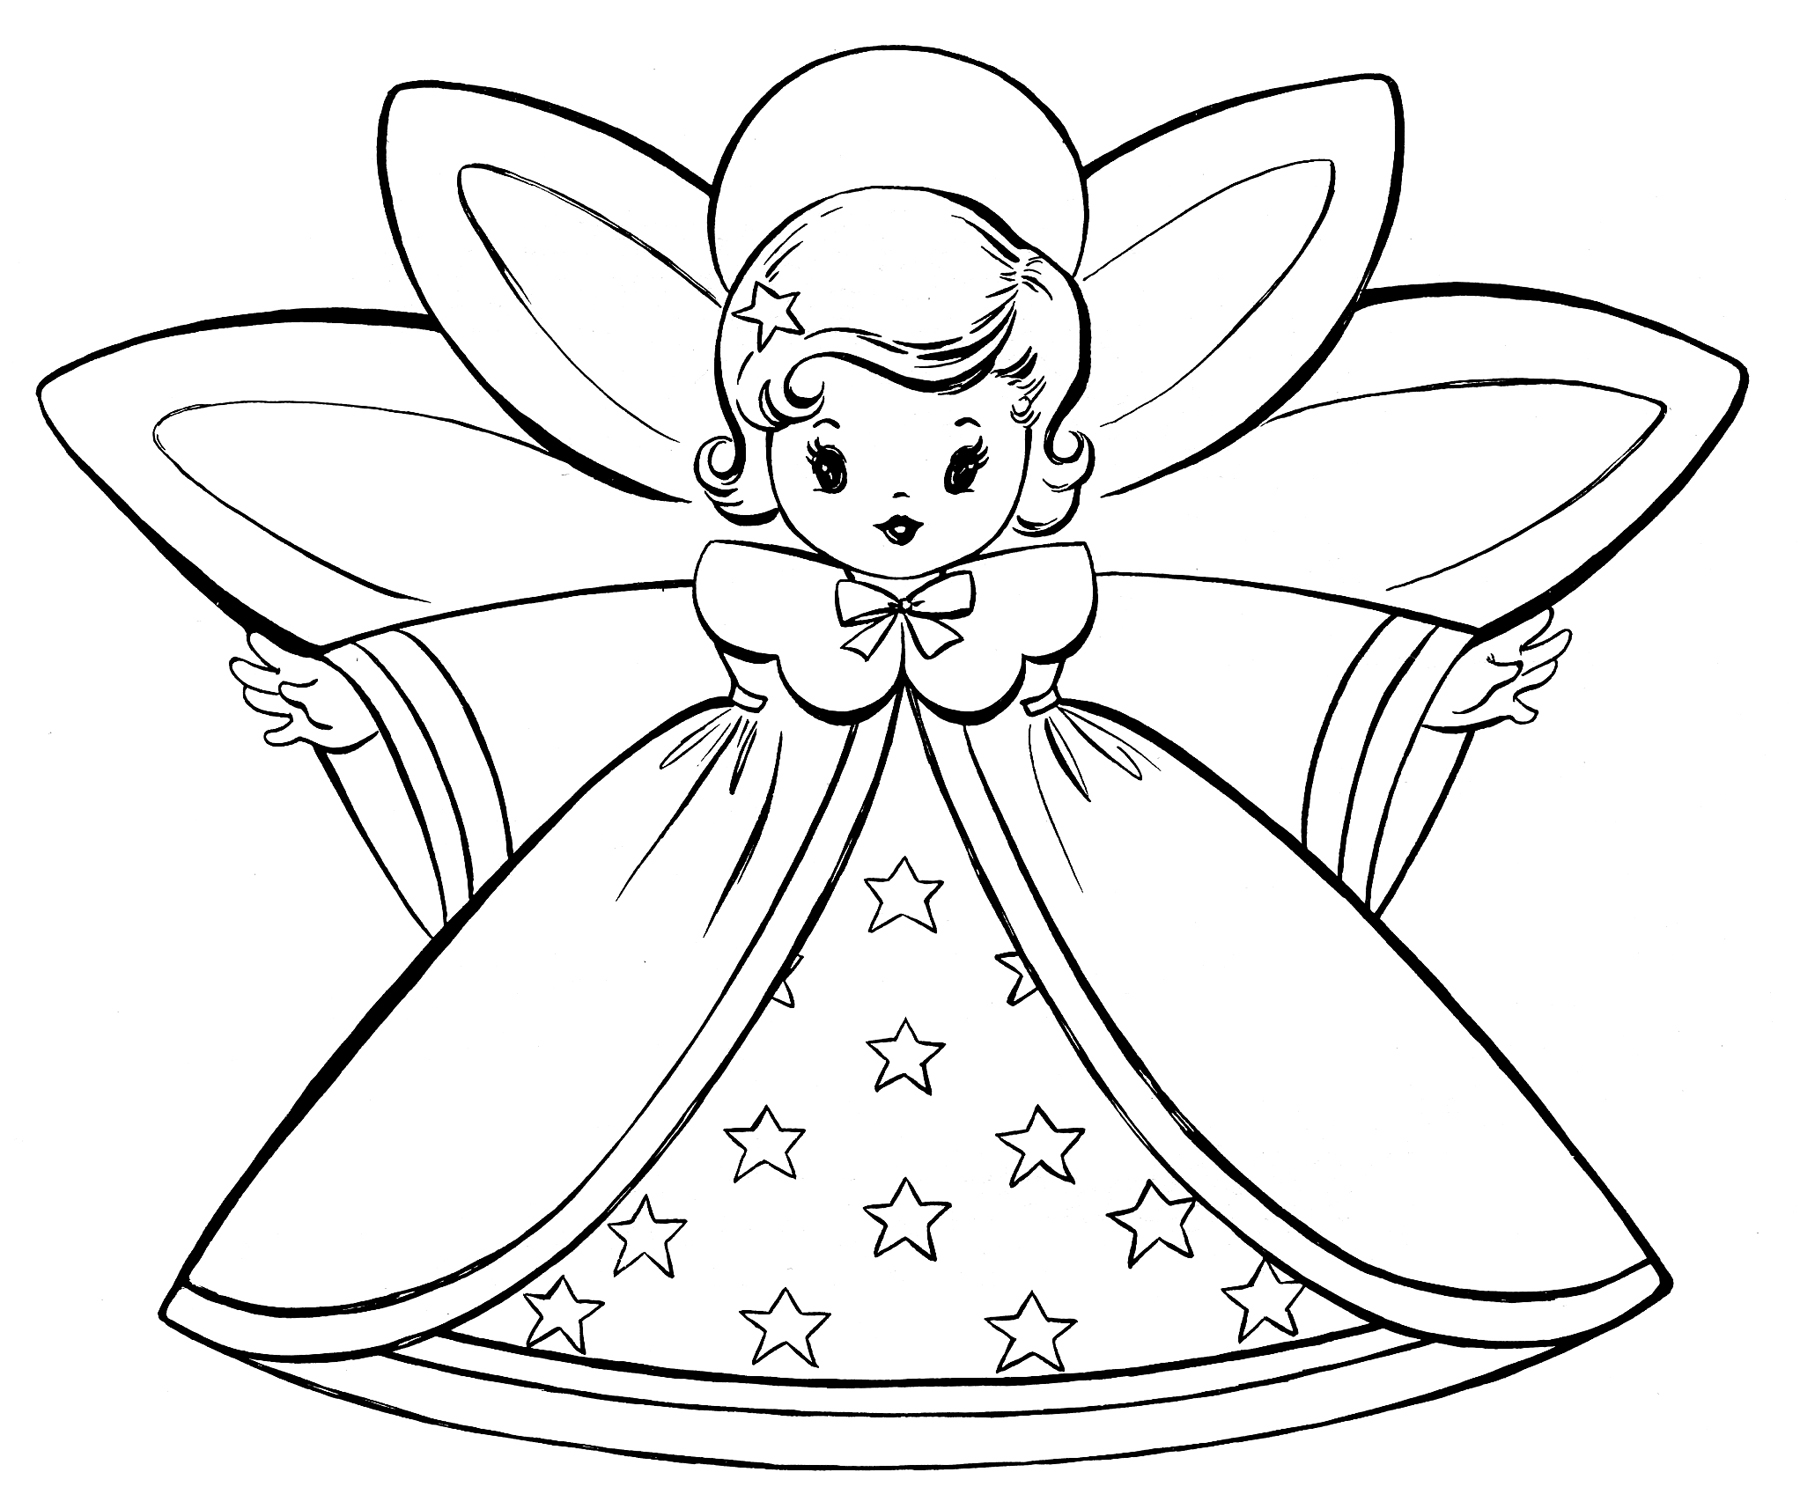 Christmas coloring in pages printable - Free Christmas Coloring Pages